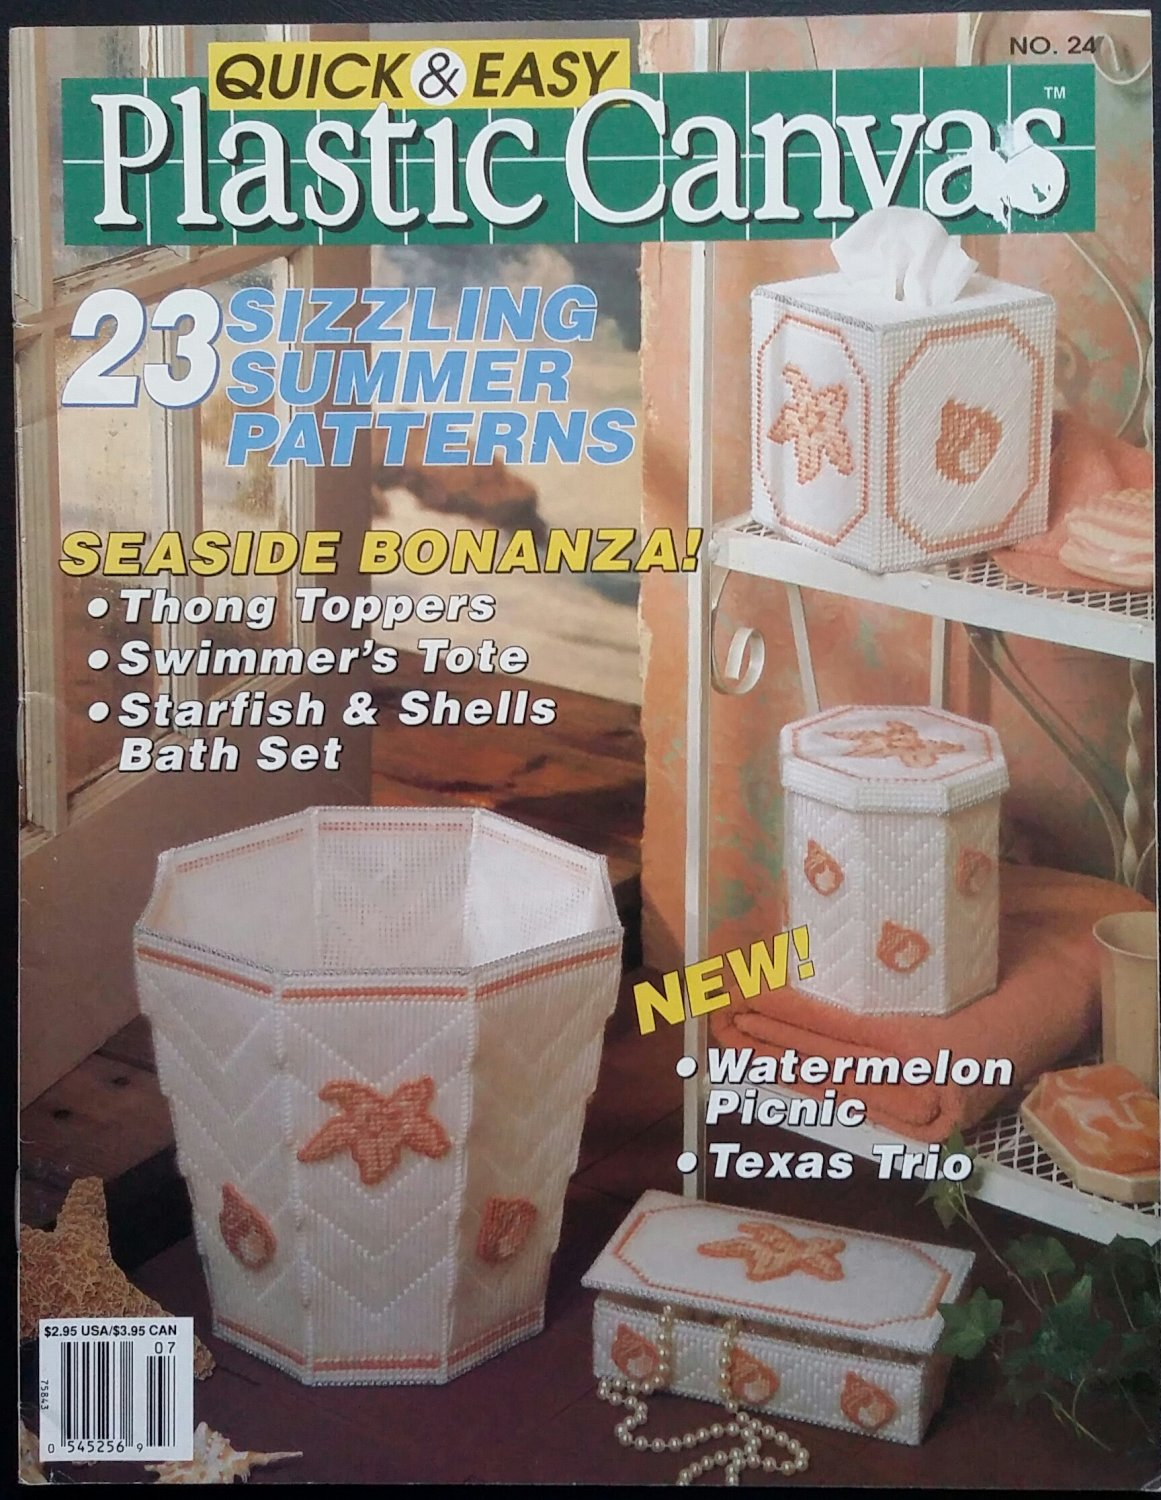 Quick & Easy Plastic Canvas No. 24 Magazine (Jun / Jul 1993)